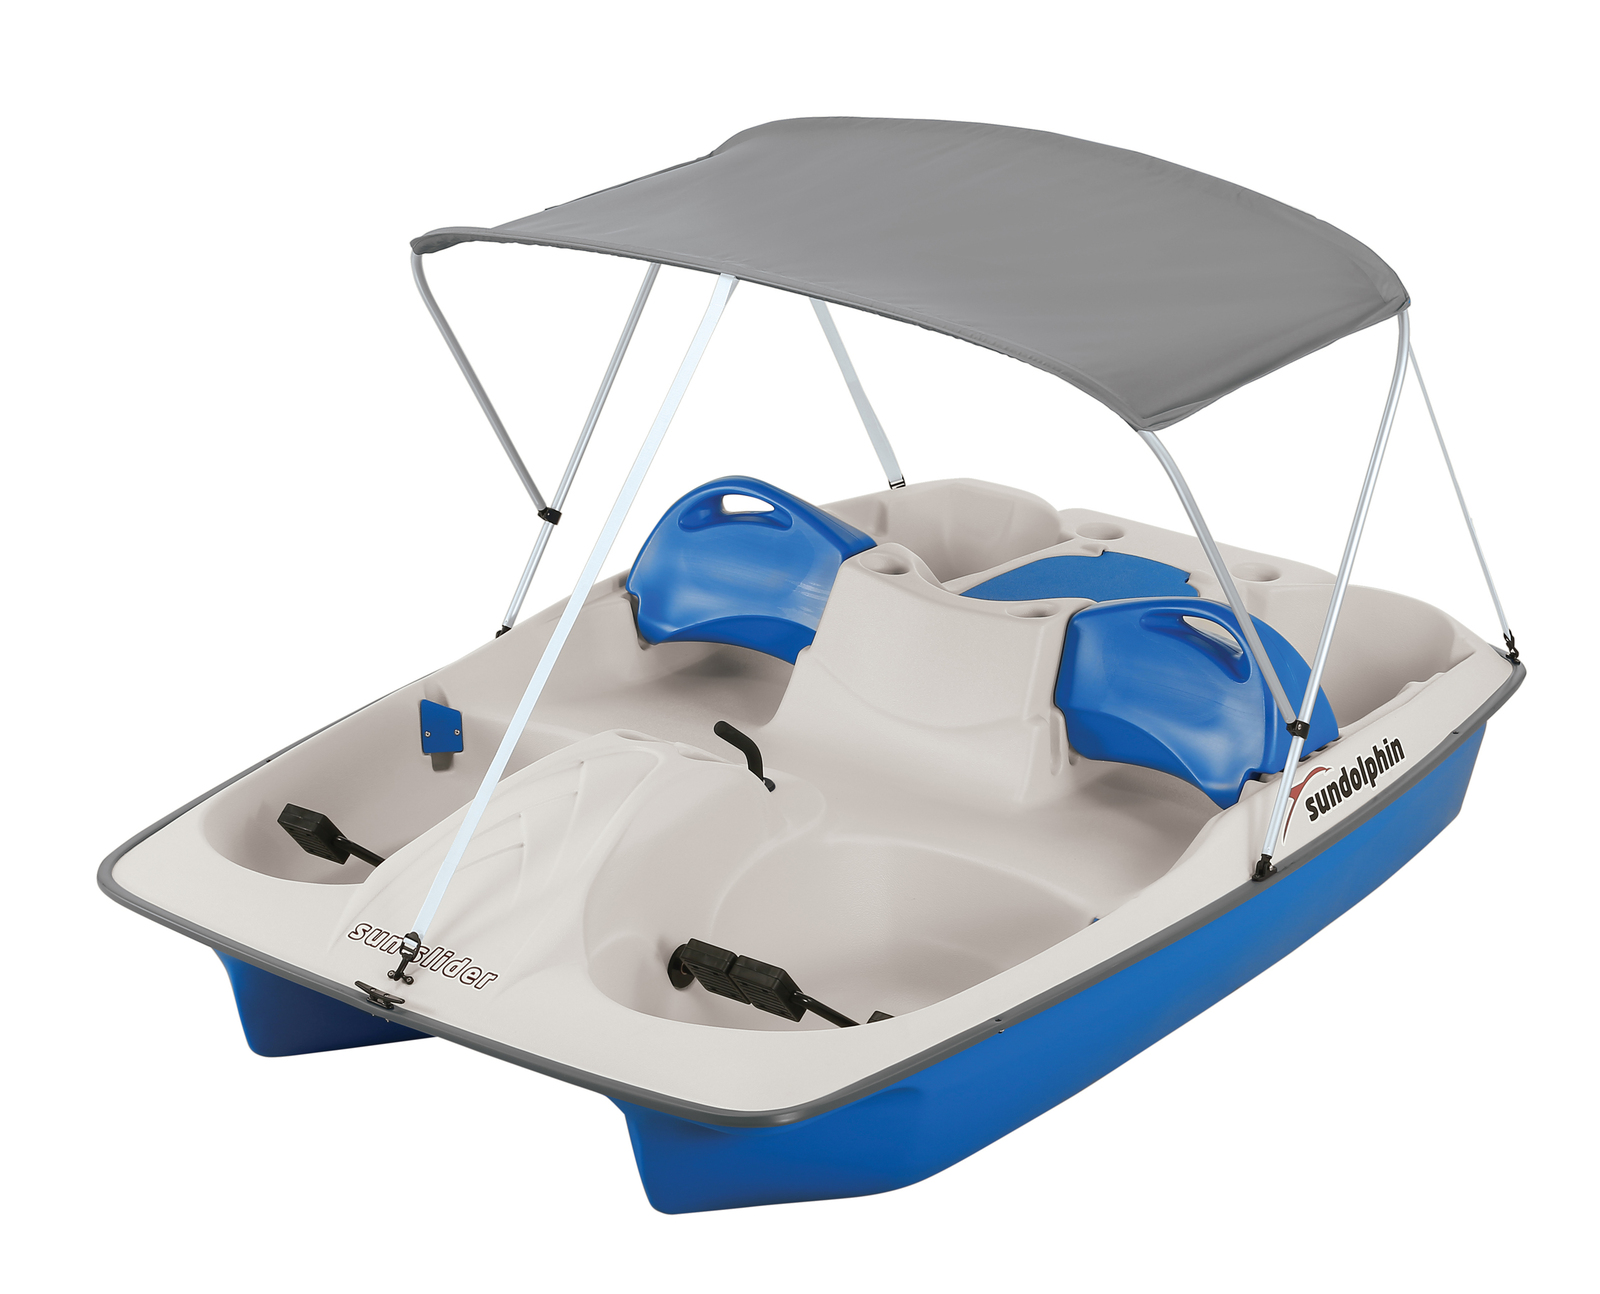 Sun Dolphin 5-Person Sun Slider Pedal Boat with Canopy, Blue